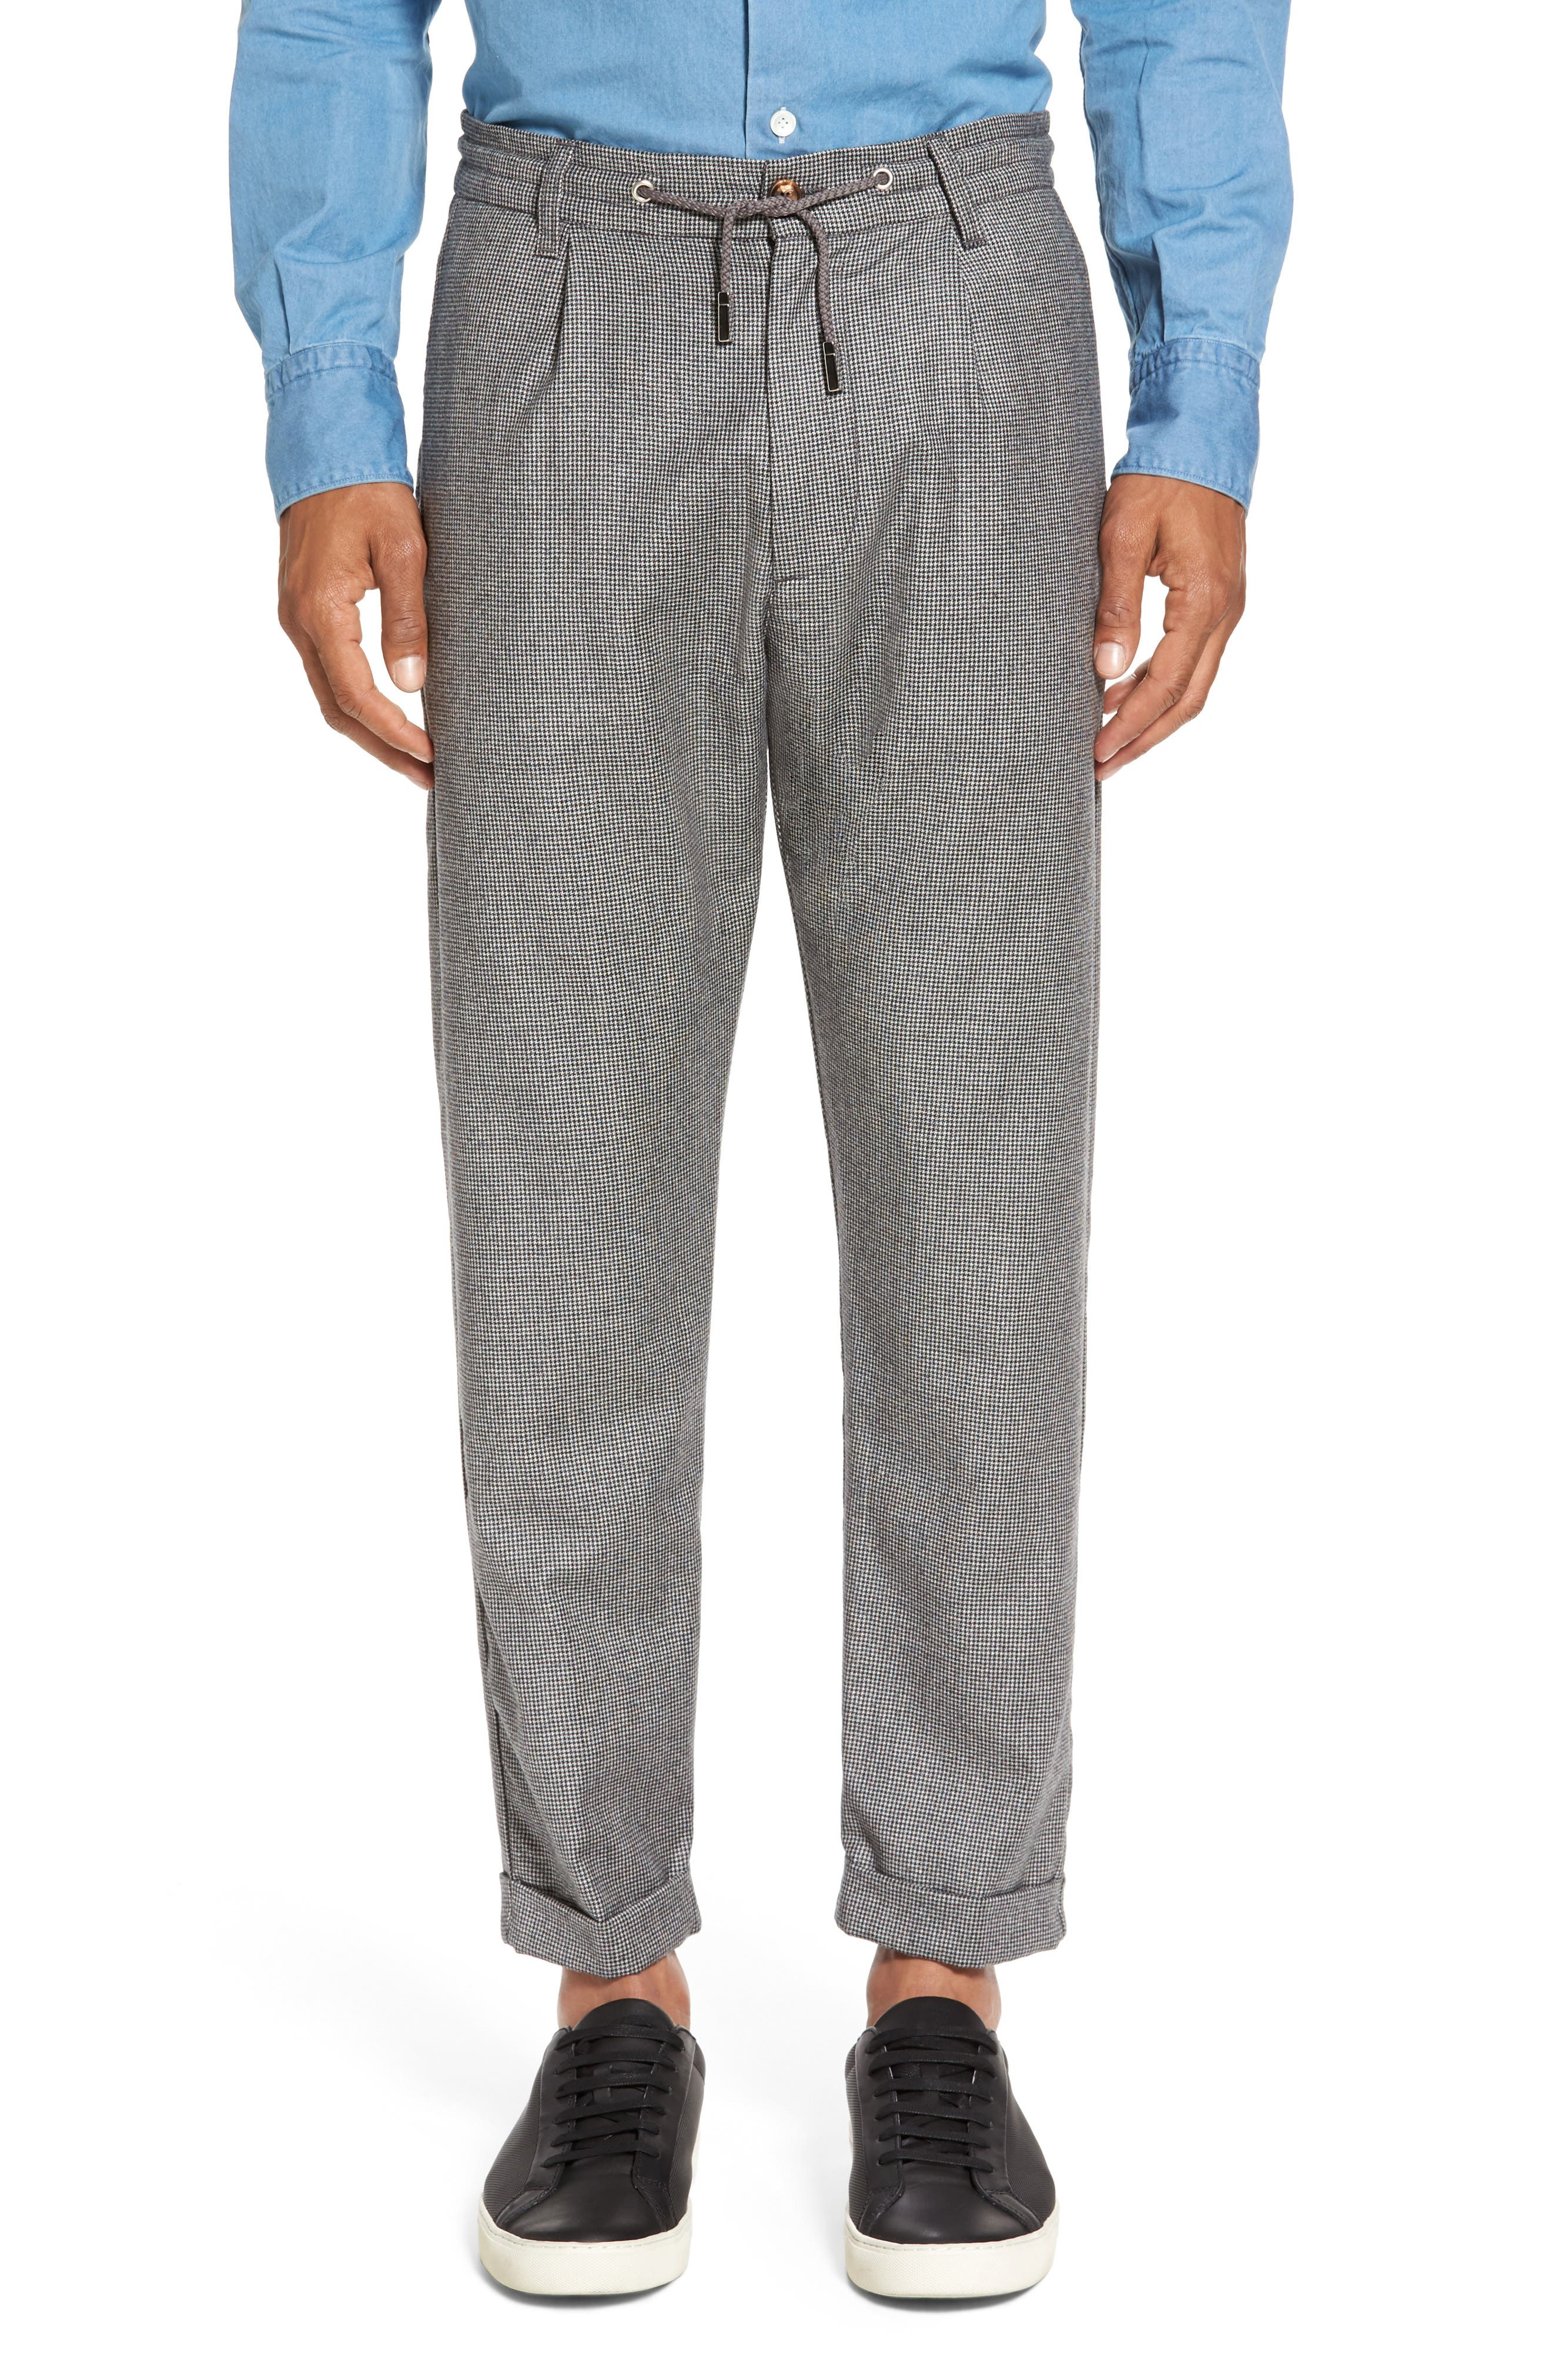 Houndstooth Wool Drawstring Jogger Pants,                             Main thumbnail 1, color,                             020